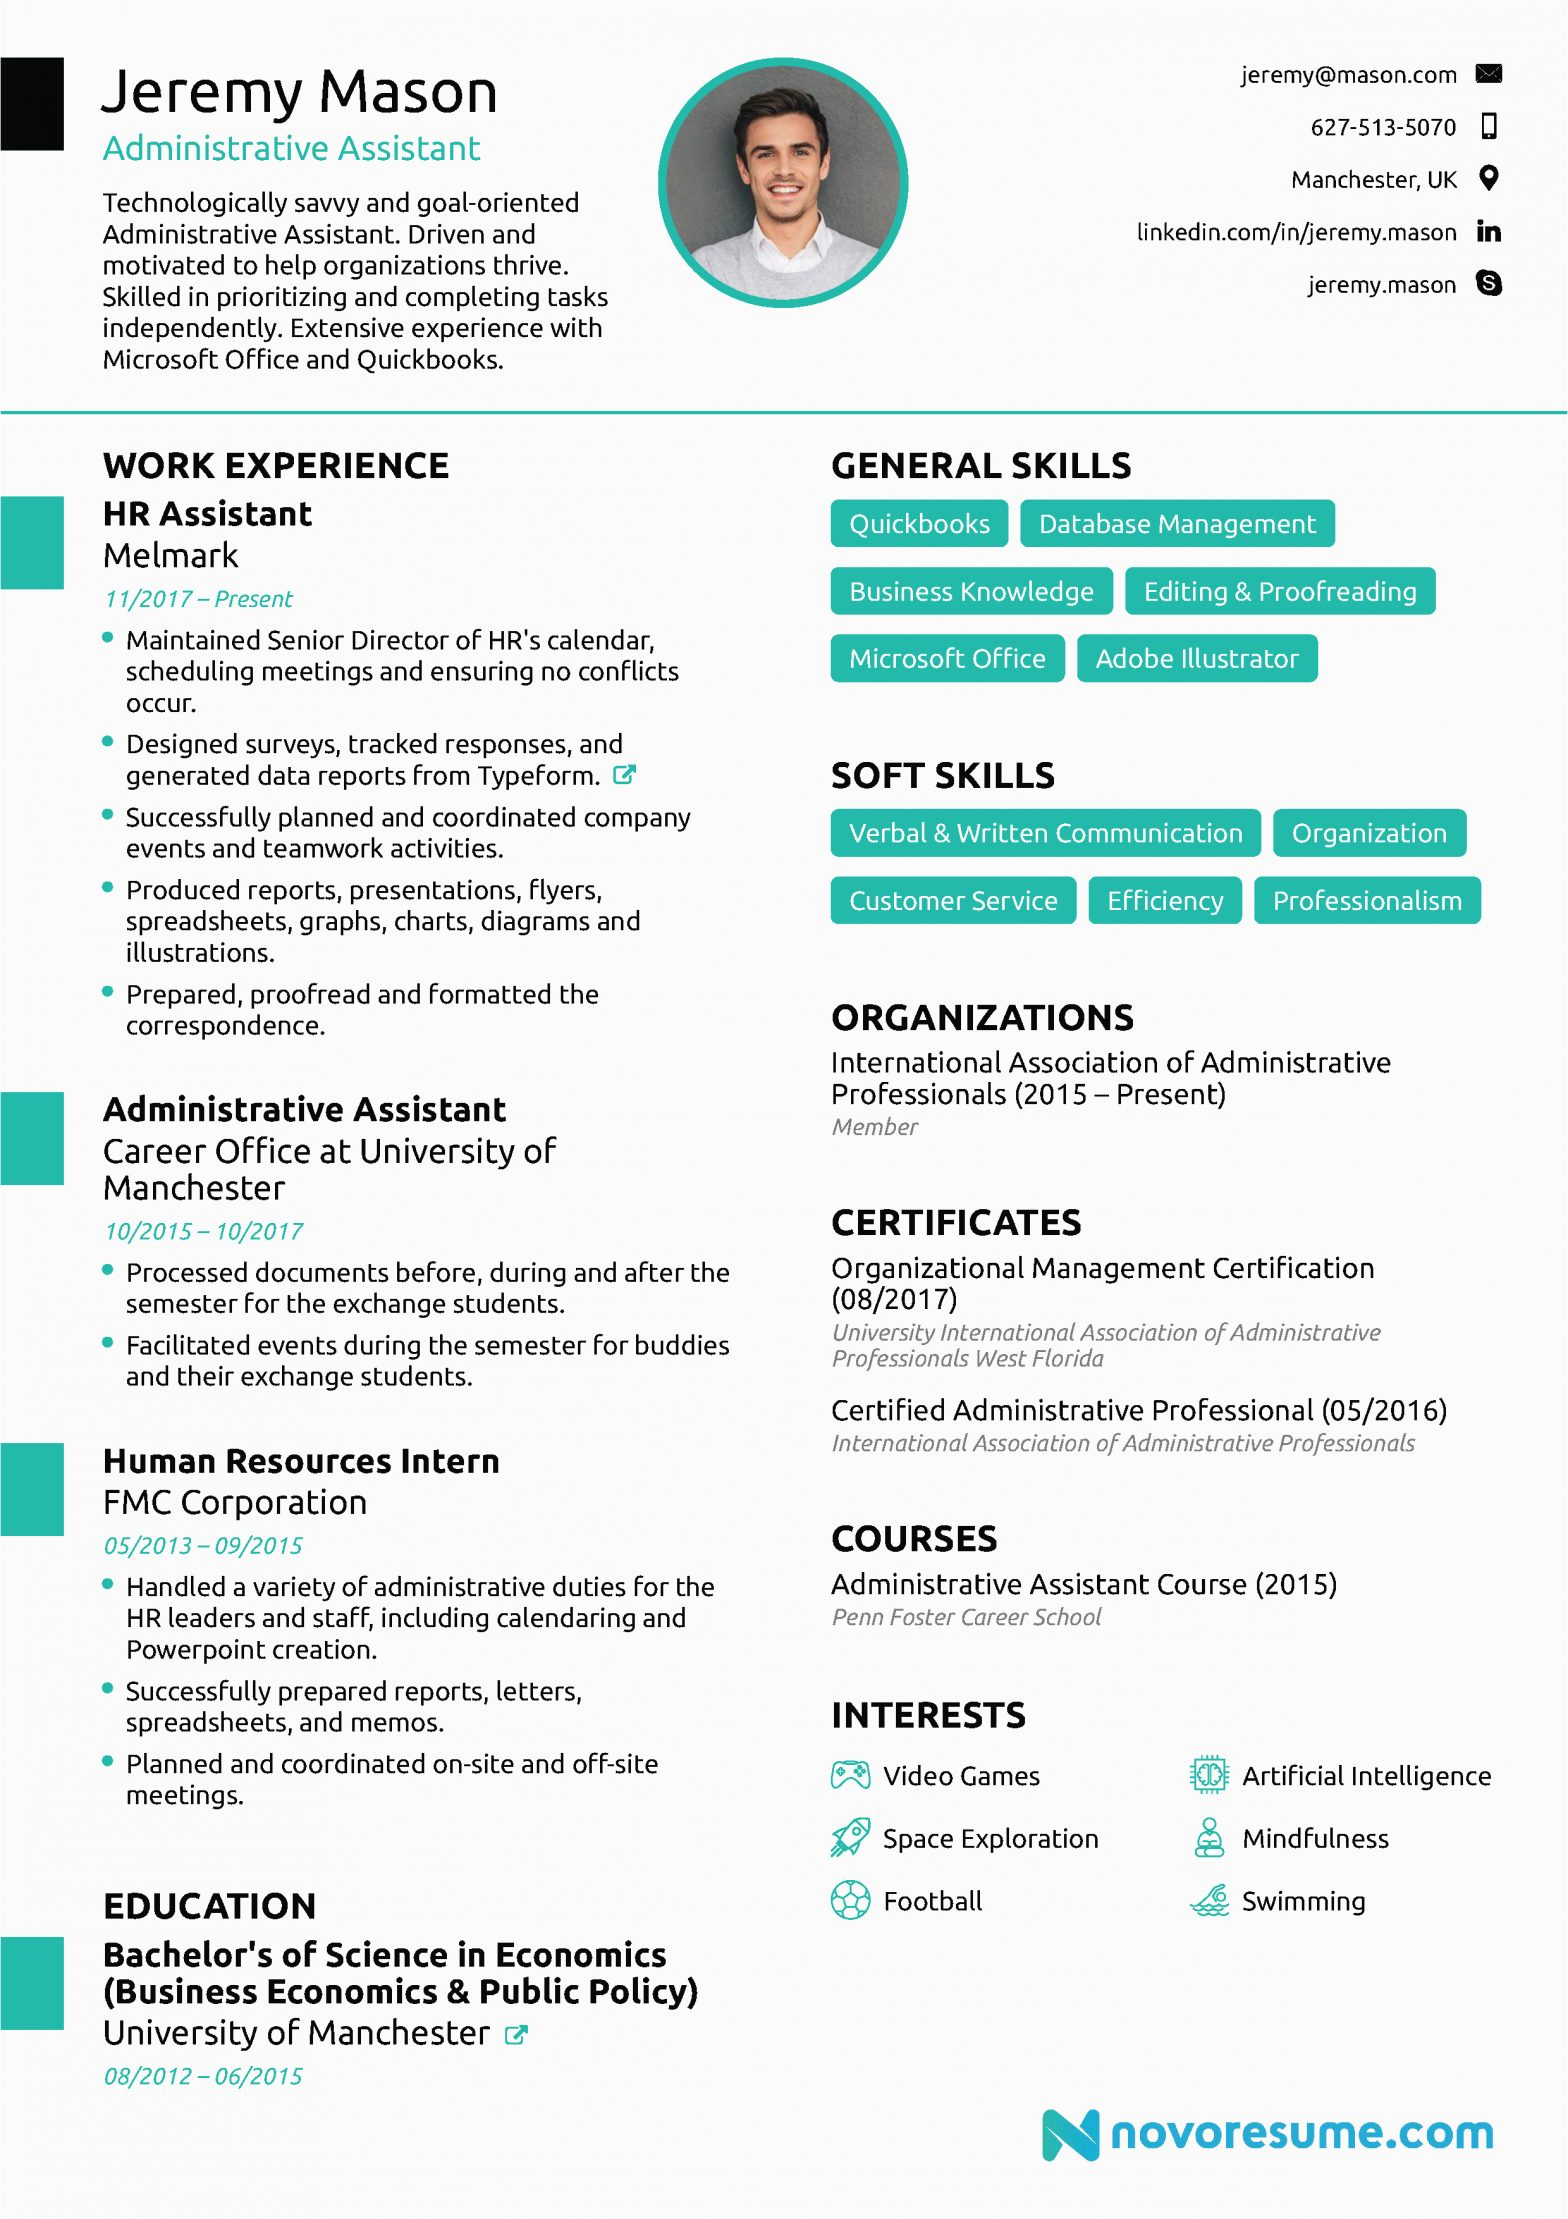 Best Resume Sample for Admin assistant Administrative assistant Resume [2021] Guide & Examples